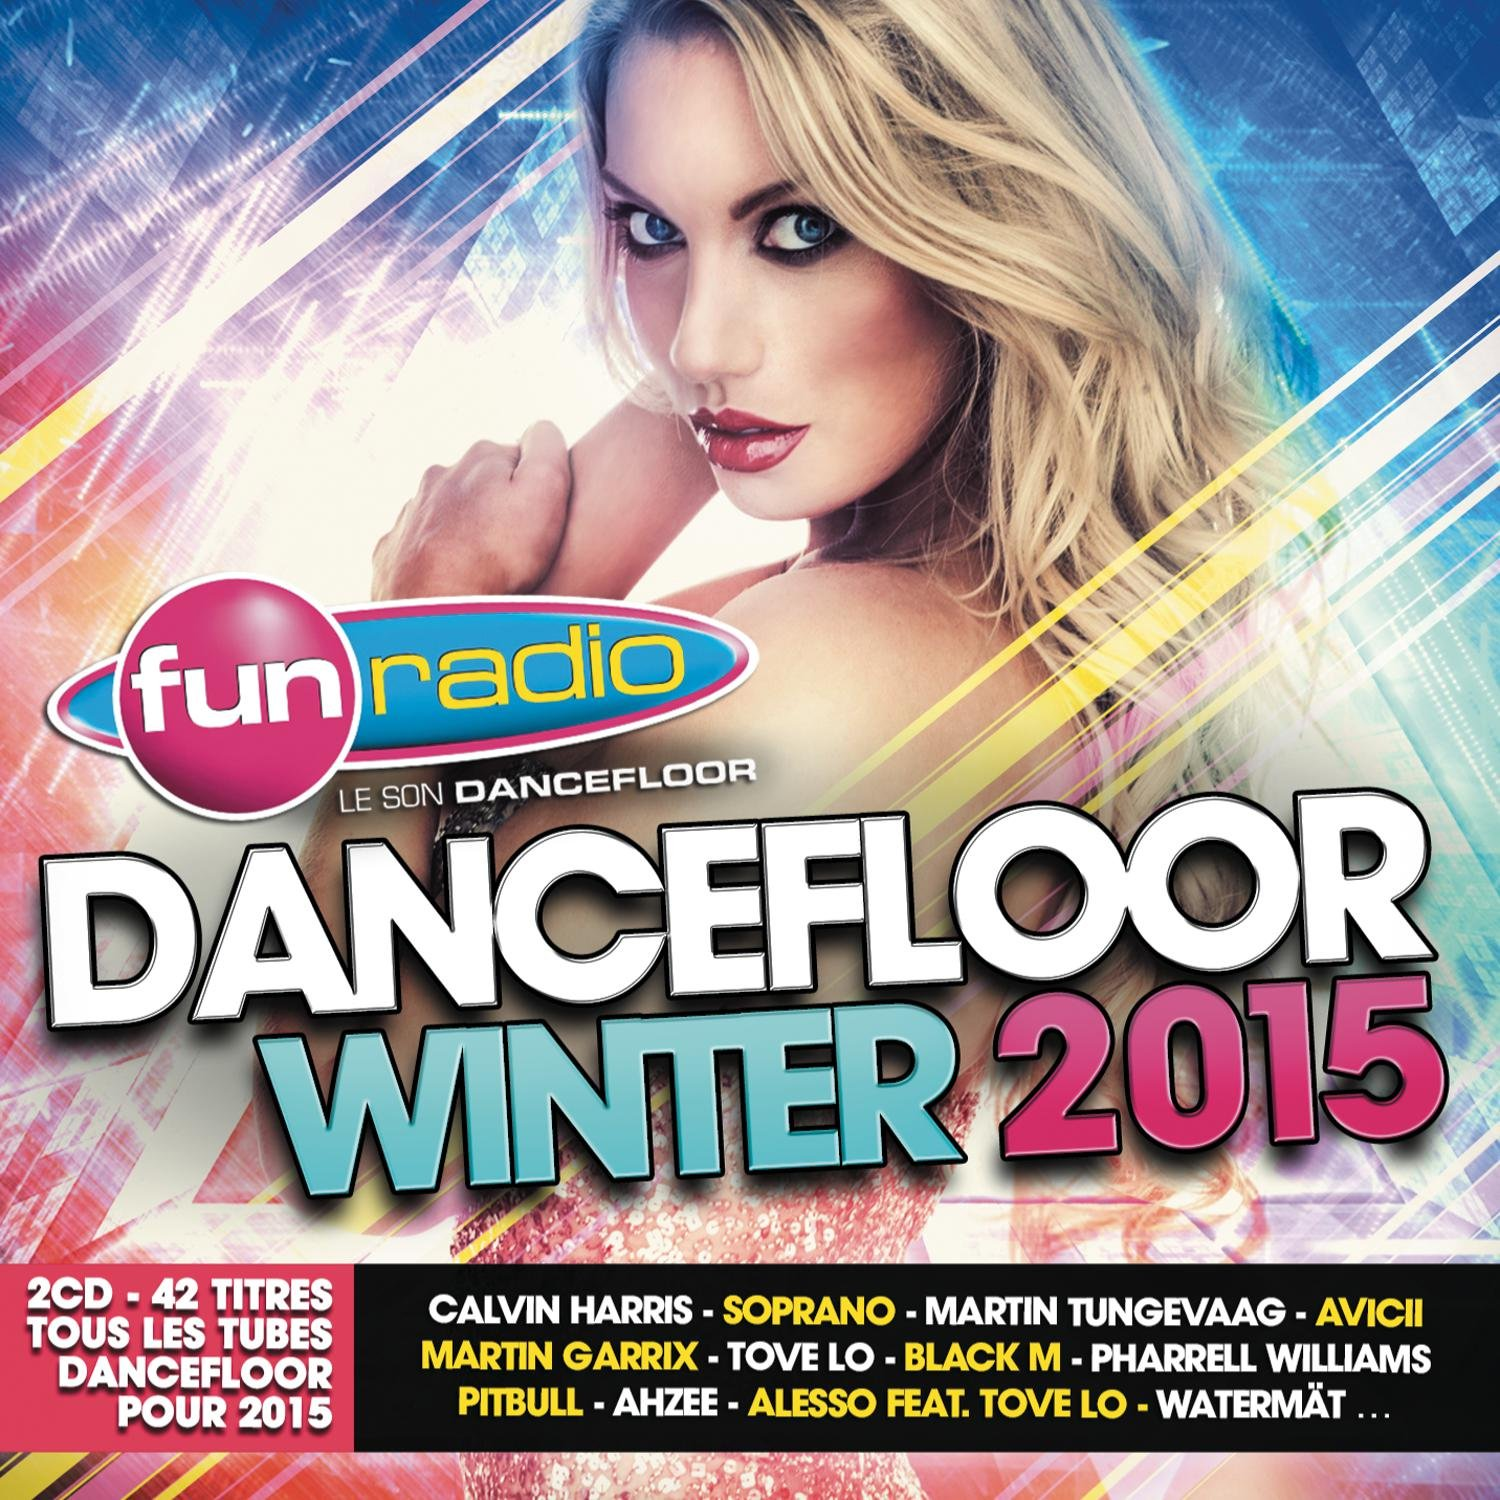 Fun Radio - Dancefloor Winter 2015